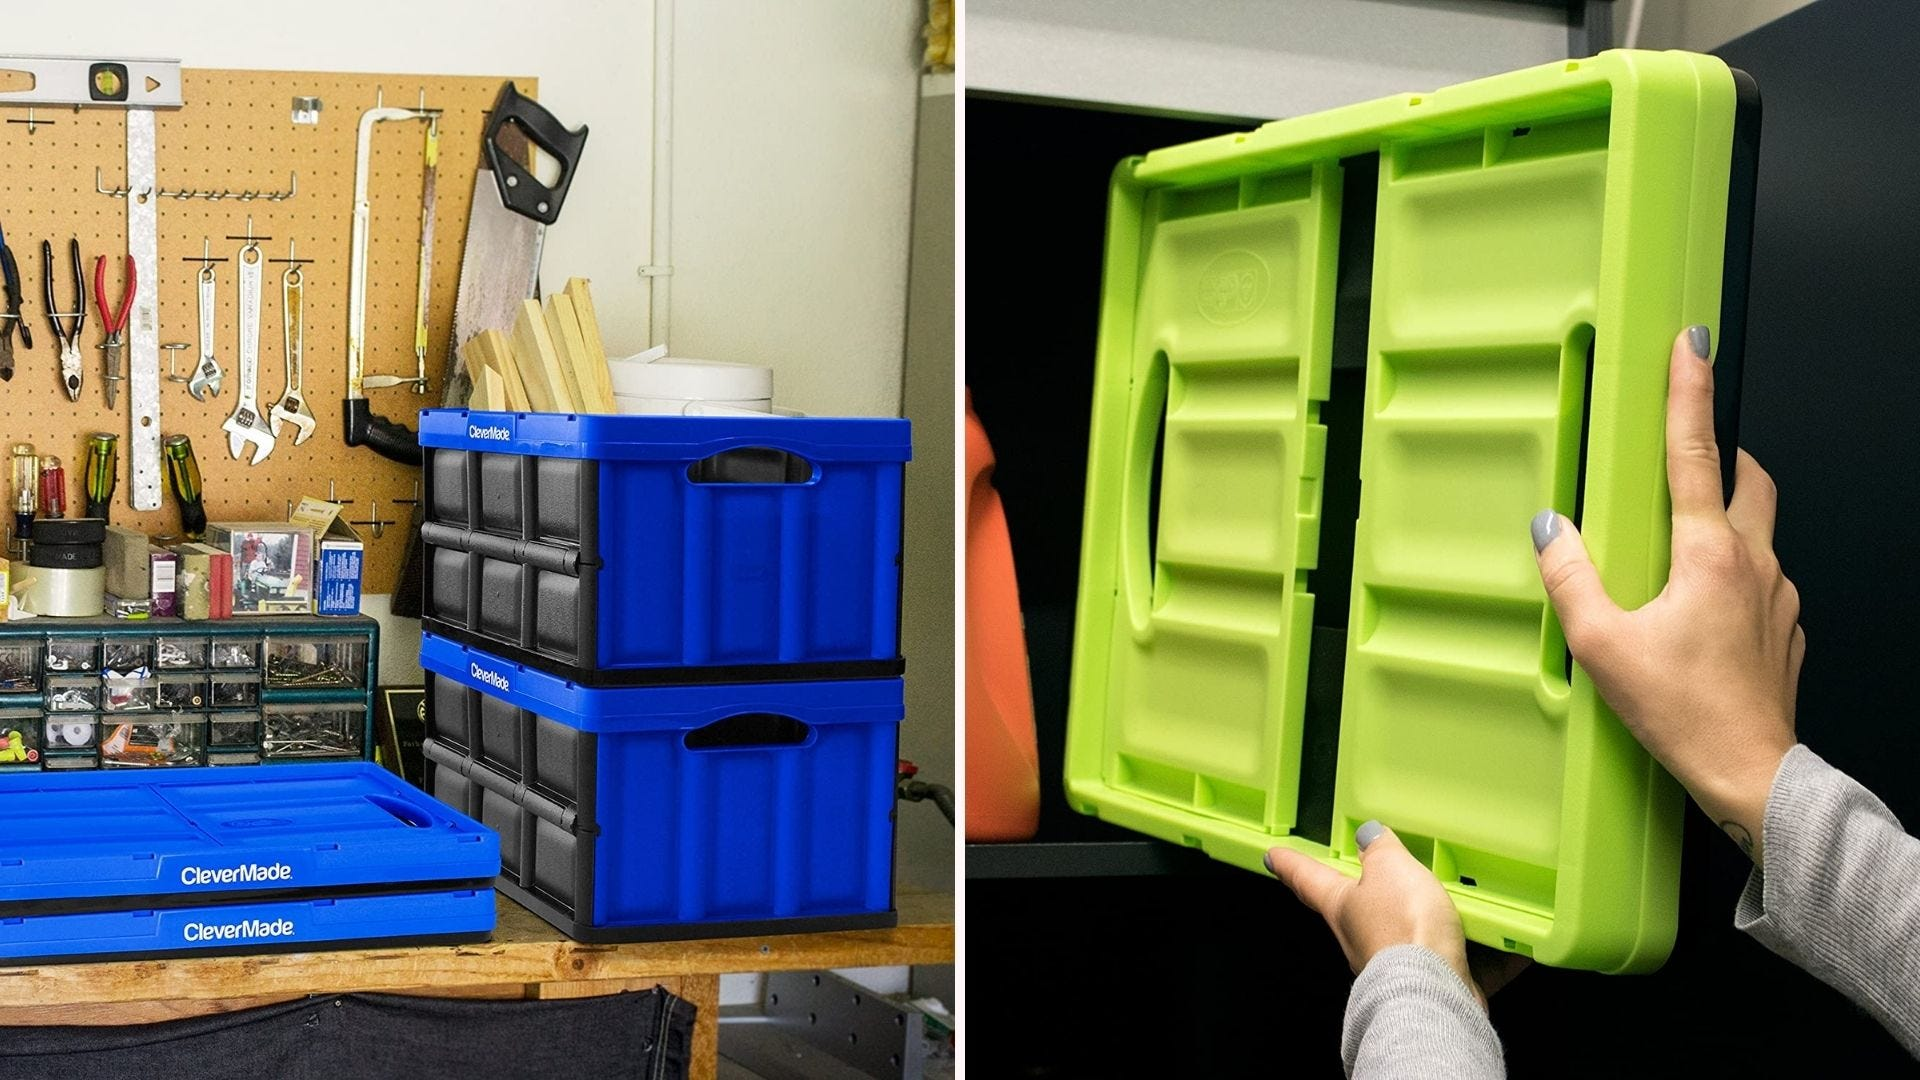 Collapsible bins for storing stuff.